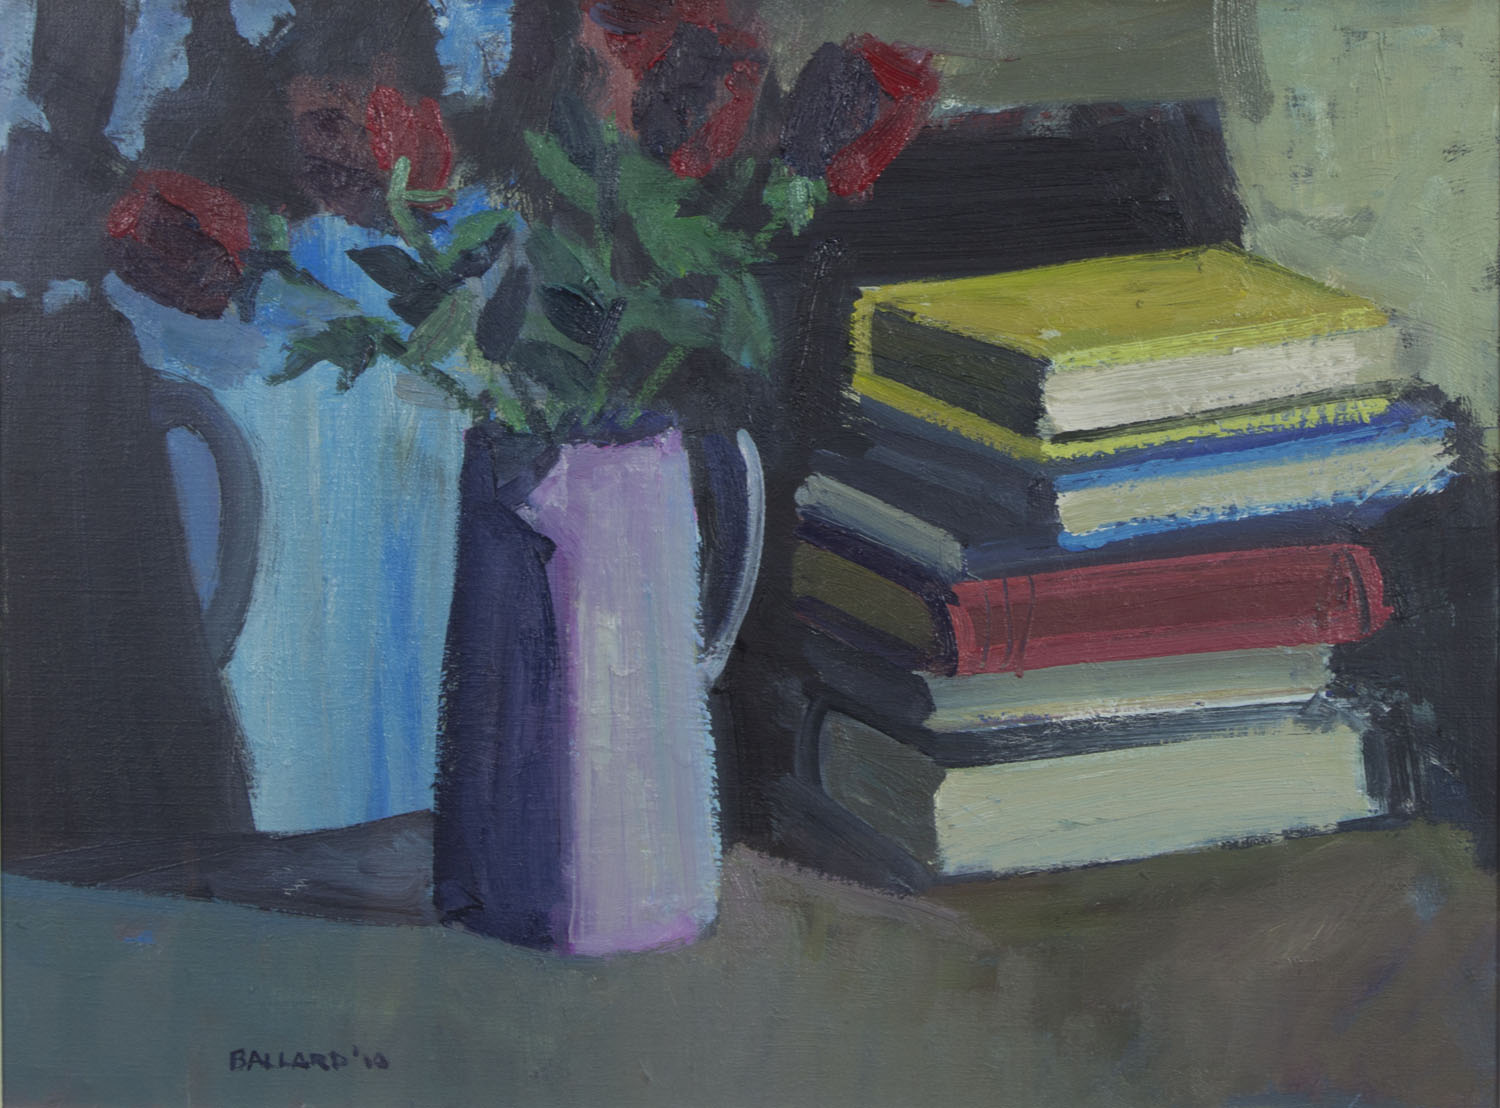 Brian Ballard 'Roses With Books' oil on canvas 45x60cm.jpg